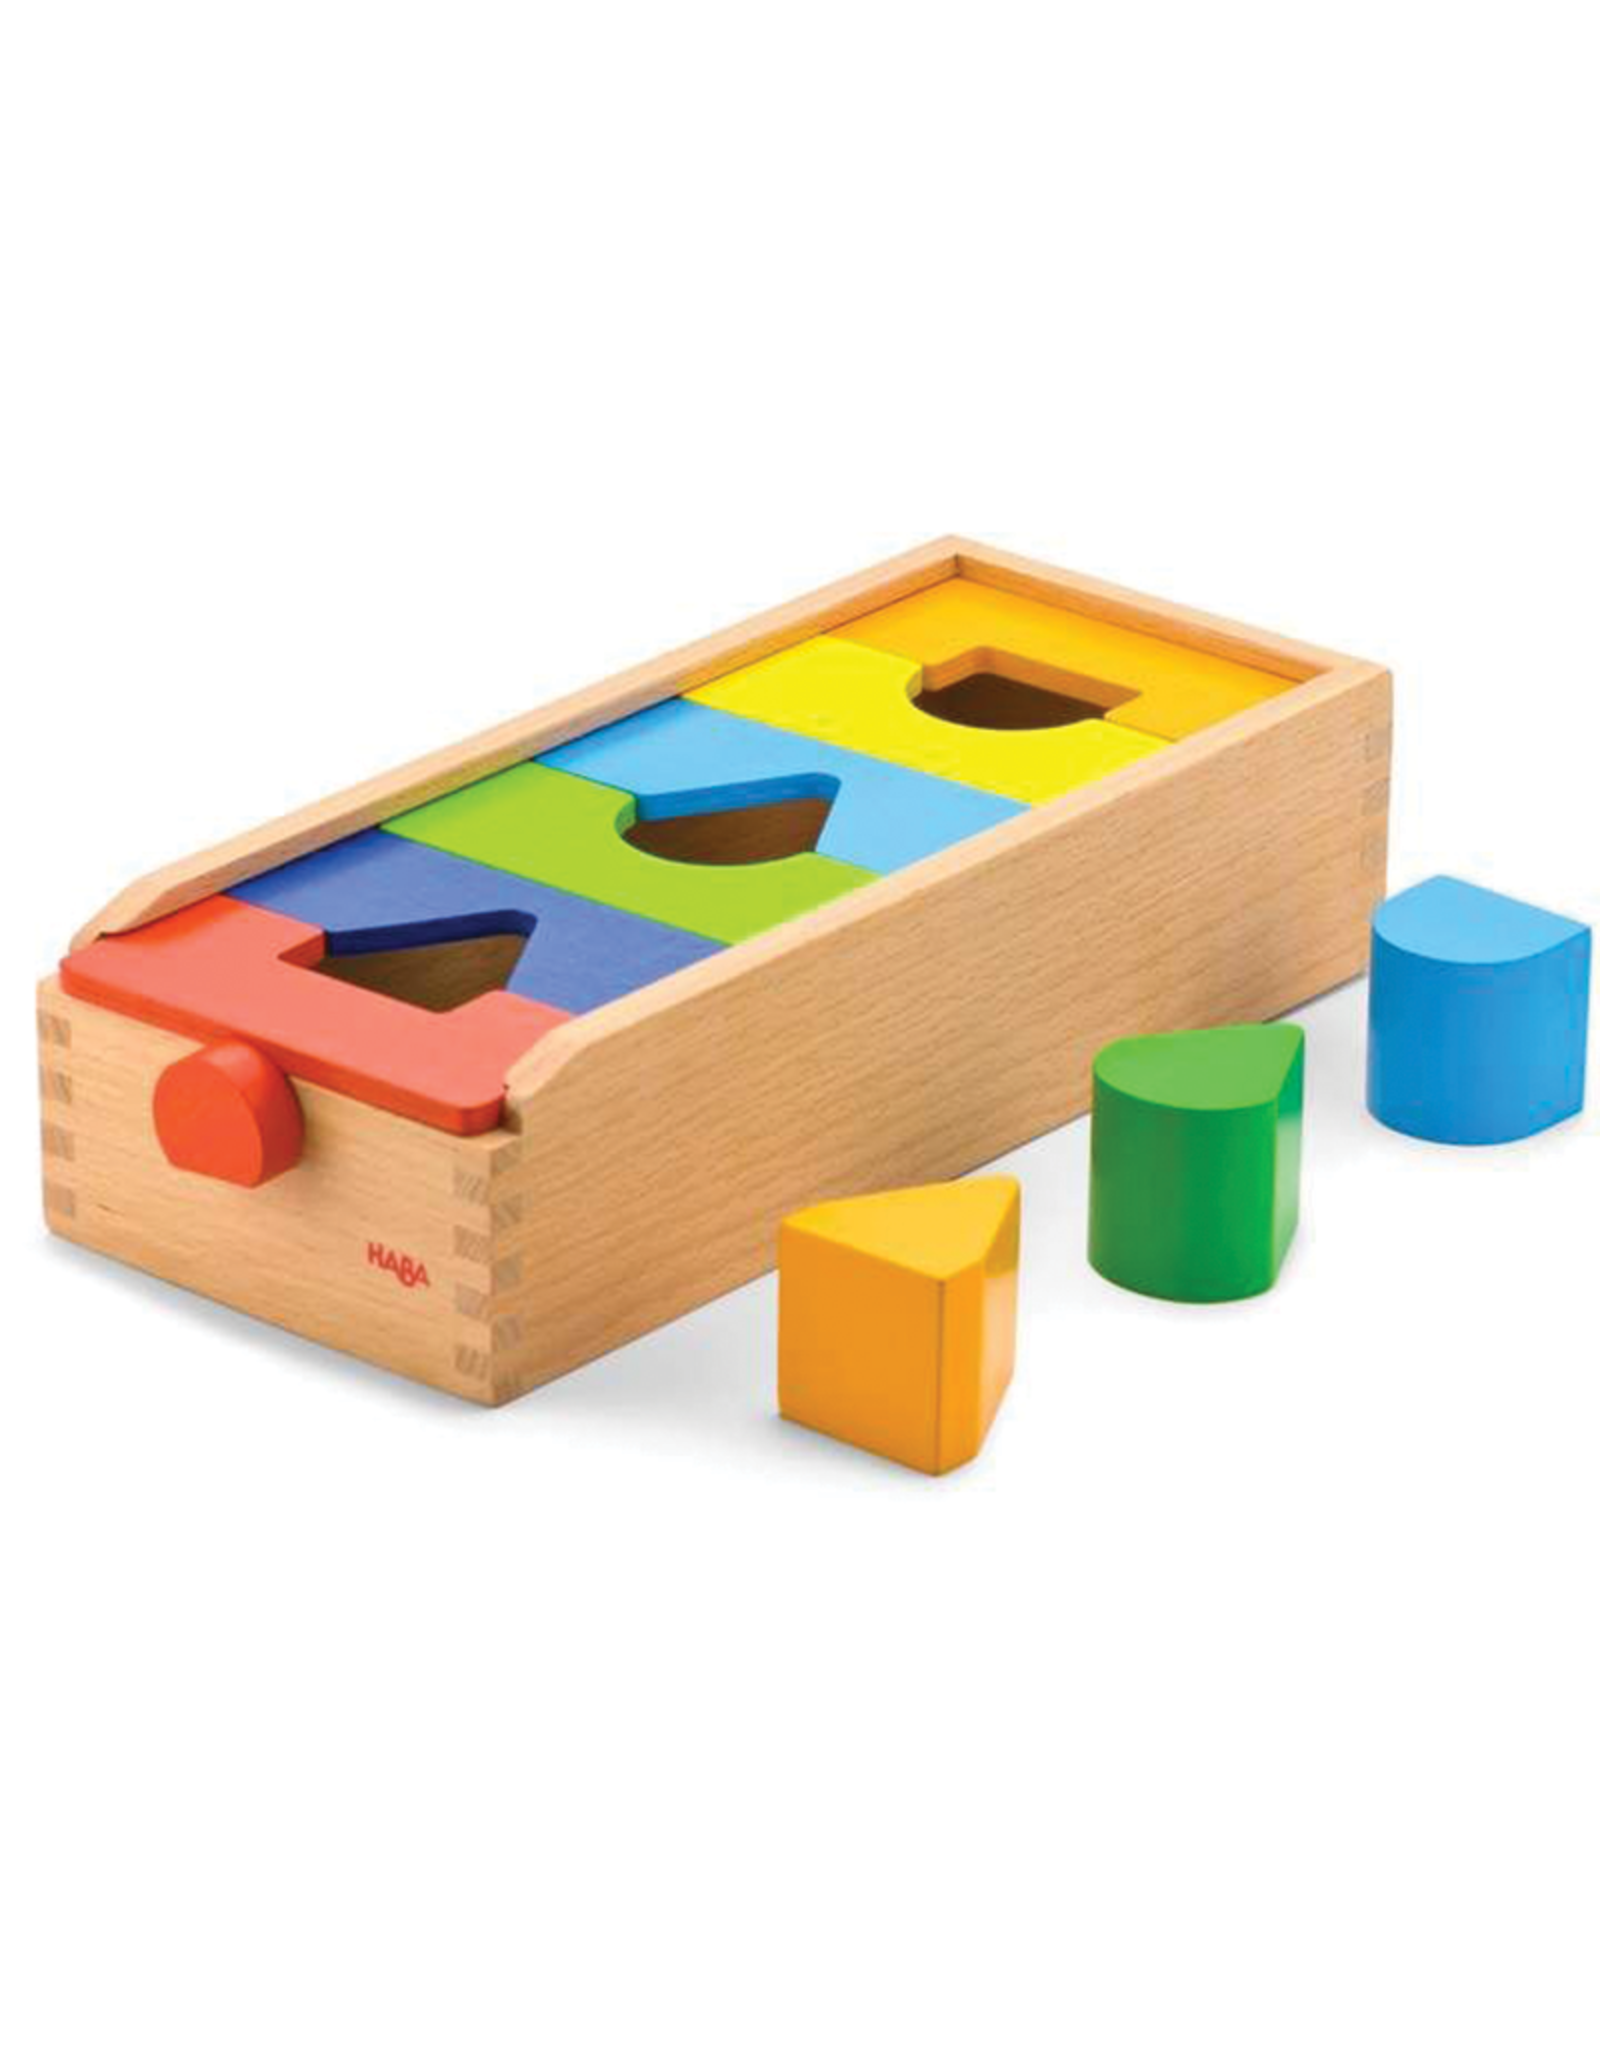 Haba Fit & Play Shape Sorter